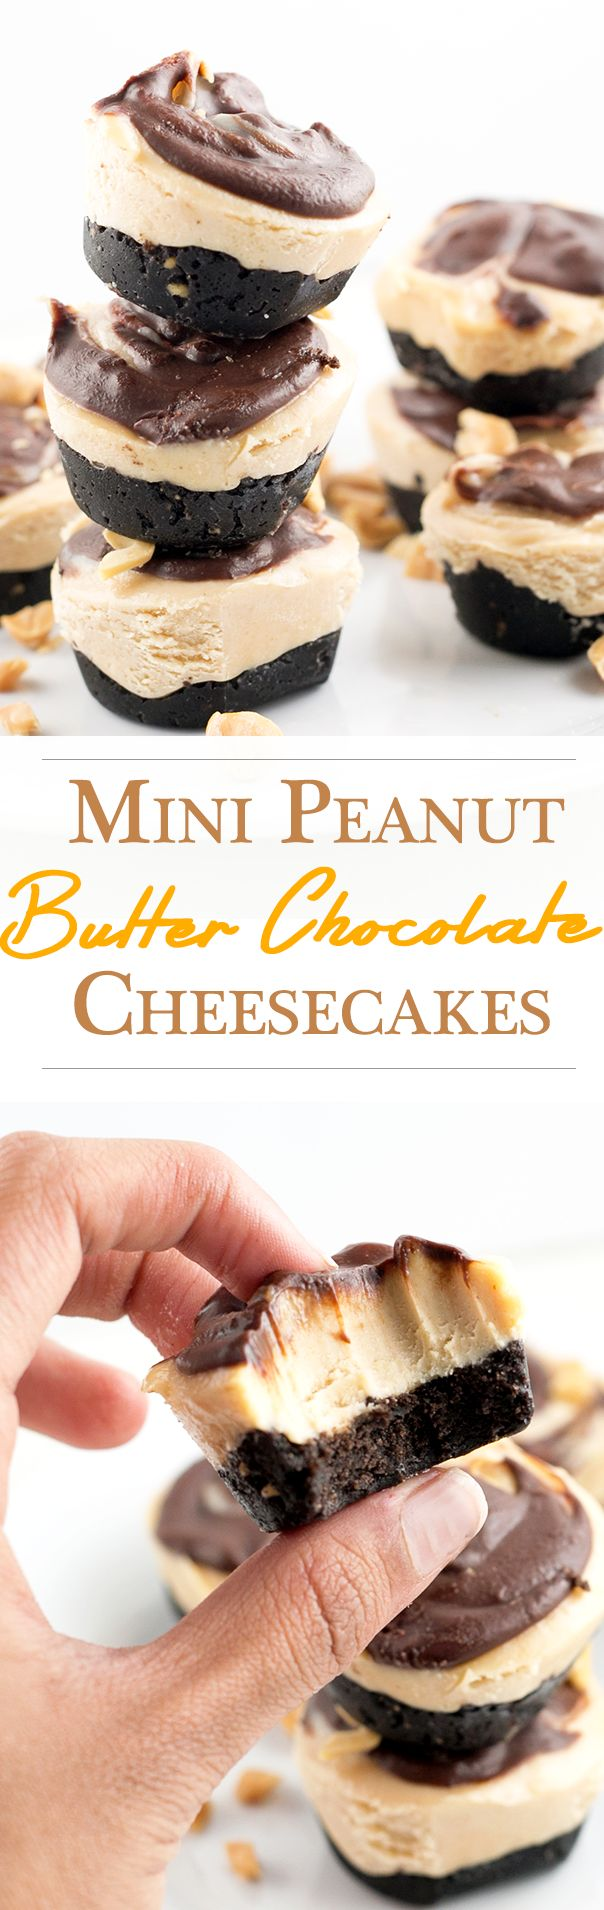 Mini Peanut Butter Cheesecakes With Chocolate Ganache Swirl. VEGAN, Simple, Delicious. #vegan #cheesecake #peanutbutter #foodporn #dessert #recipes